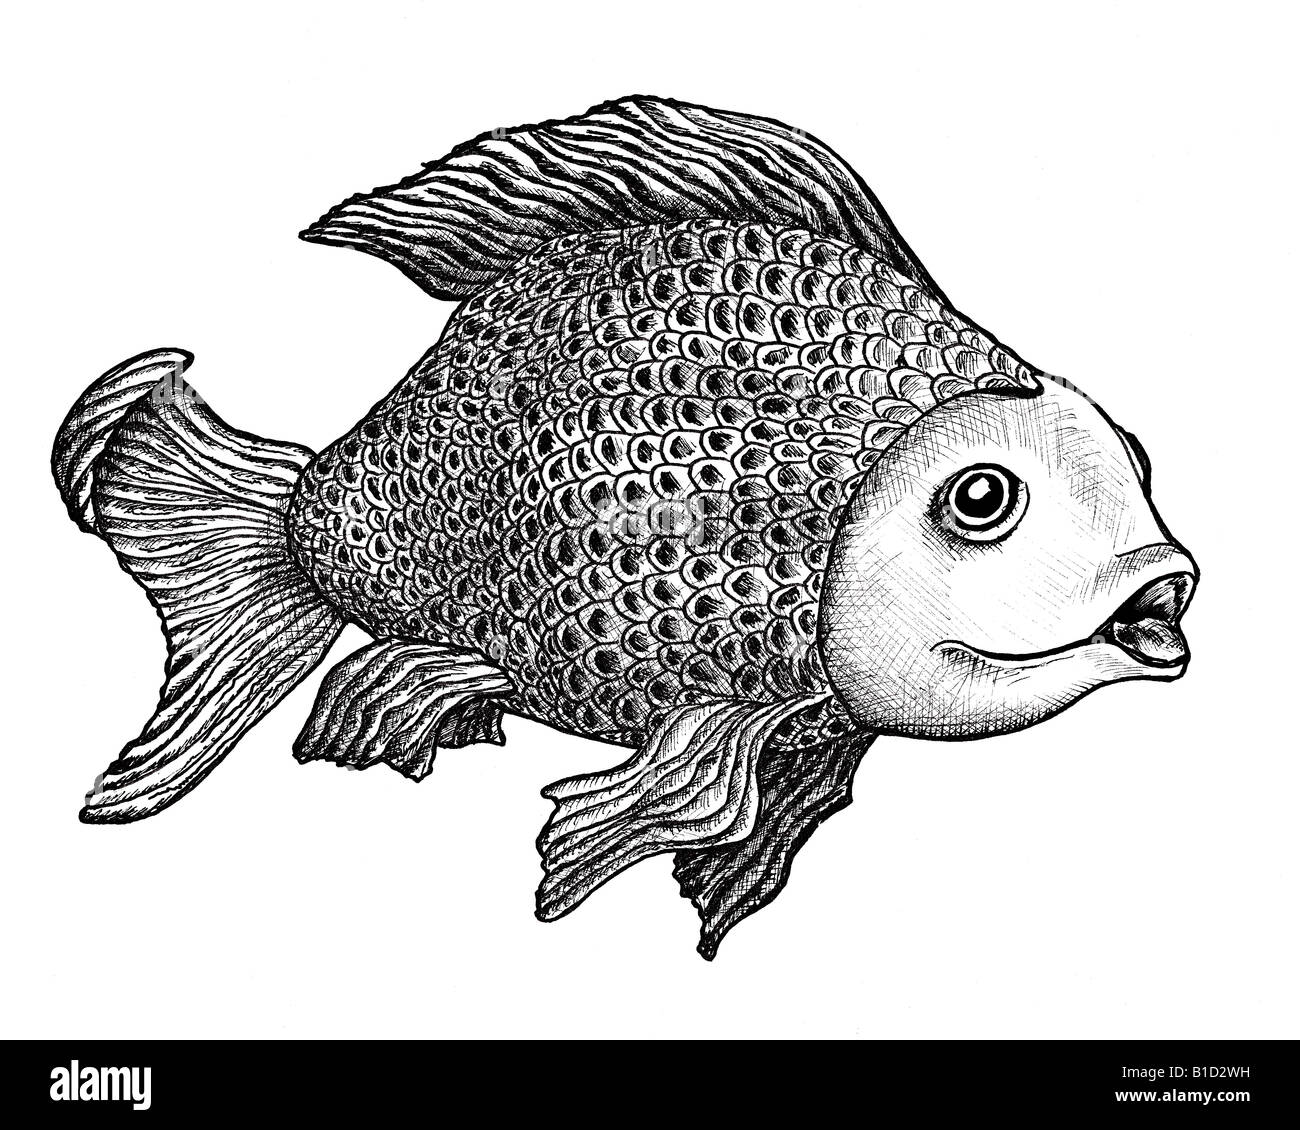 Fish Drawing Stock Photos Amp Fish Drawing Stock Images